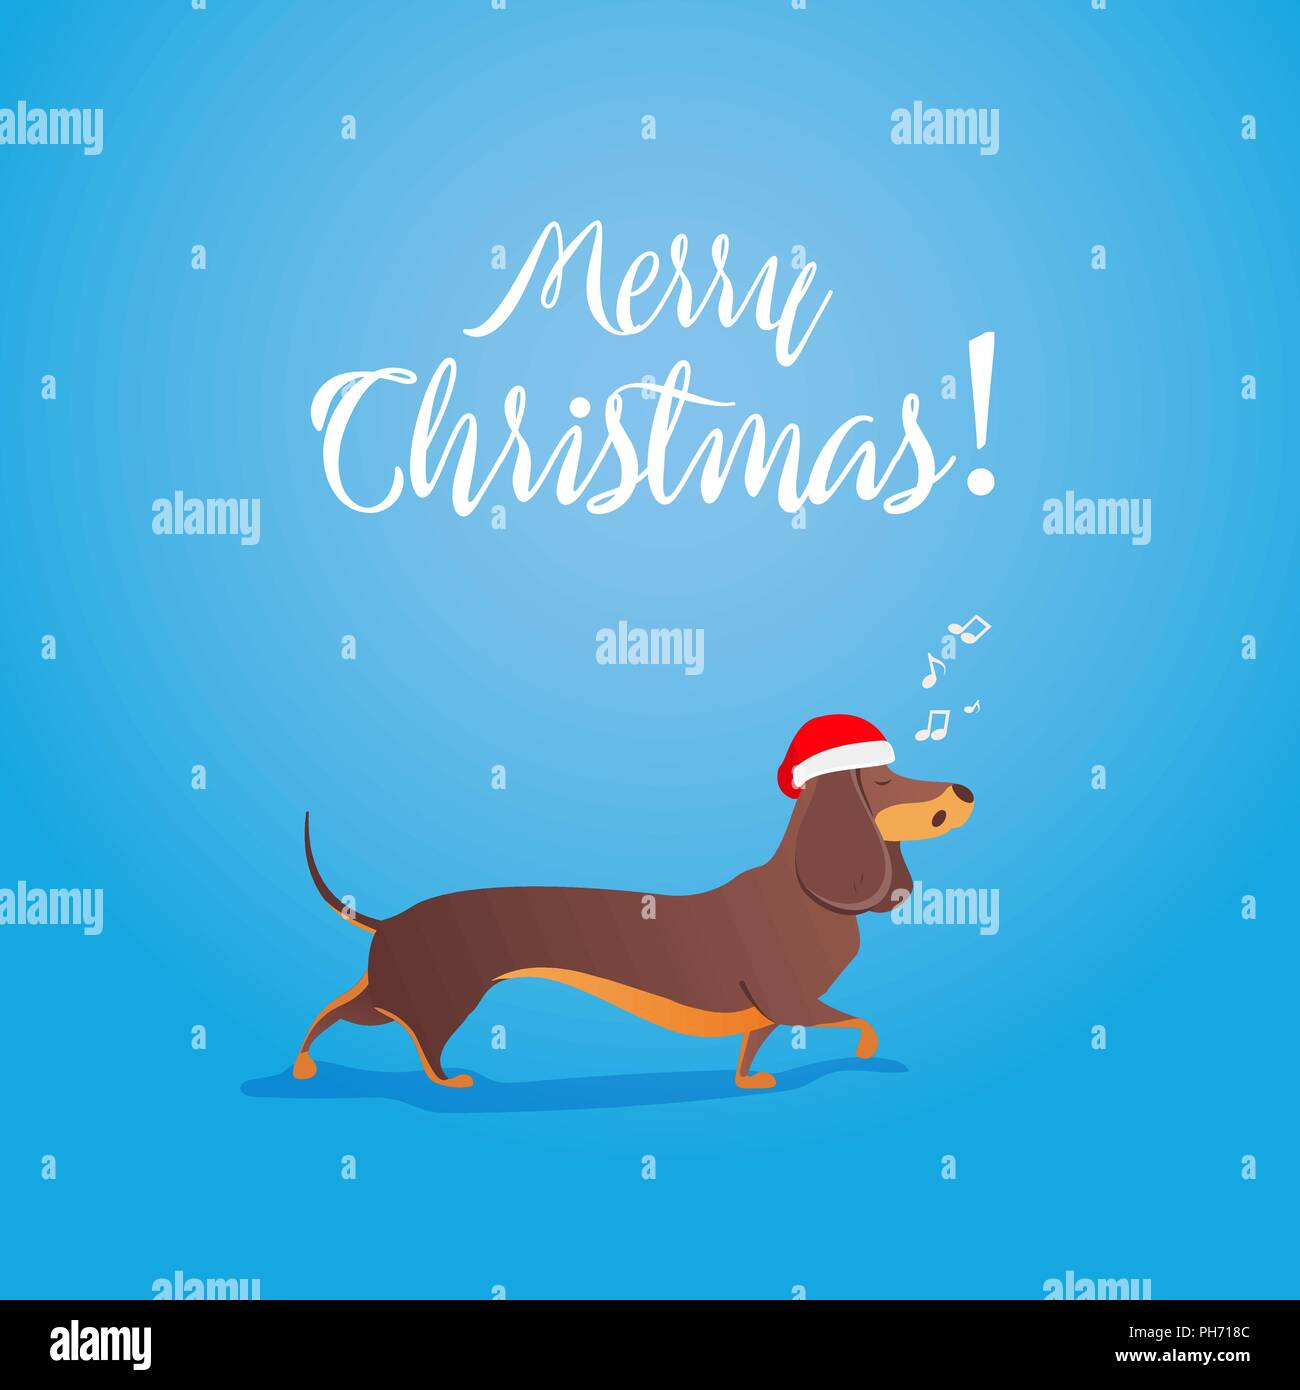 Dachshund Christmas Decoration Stock Photos & Dachshund Christmas ...